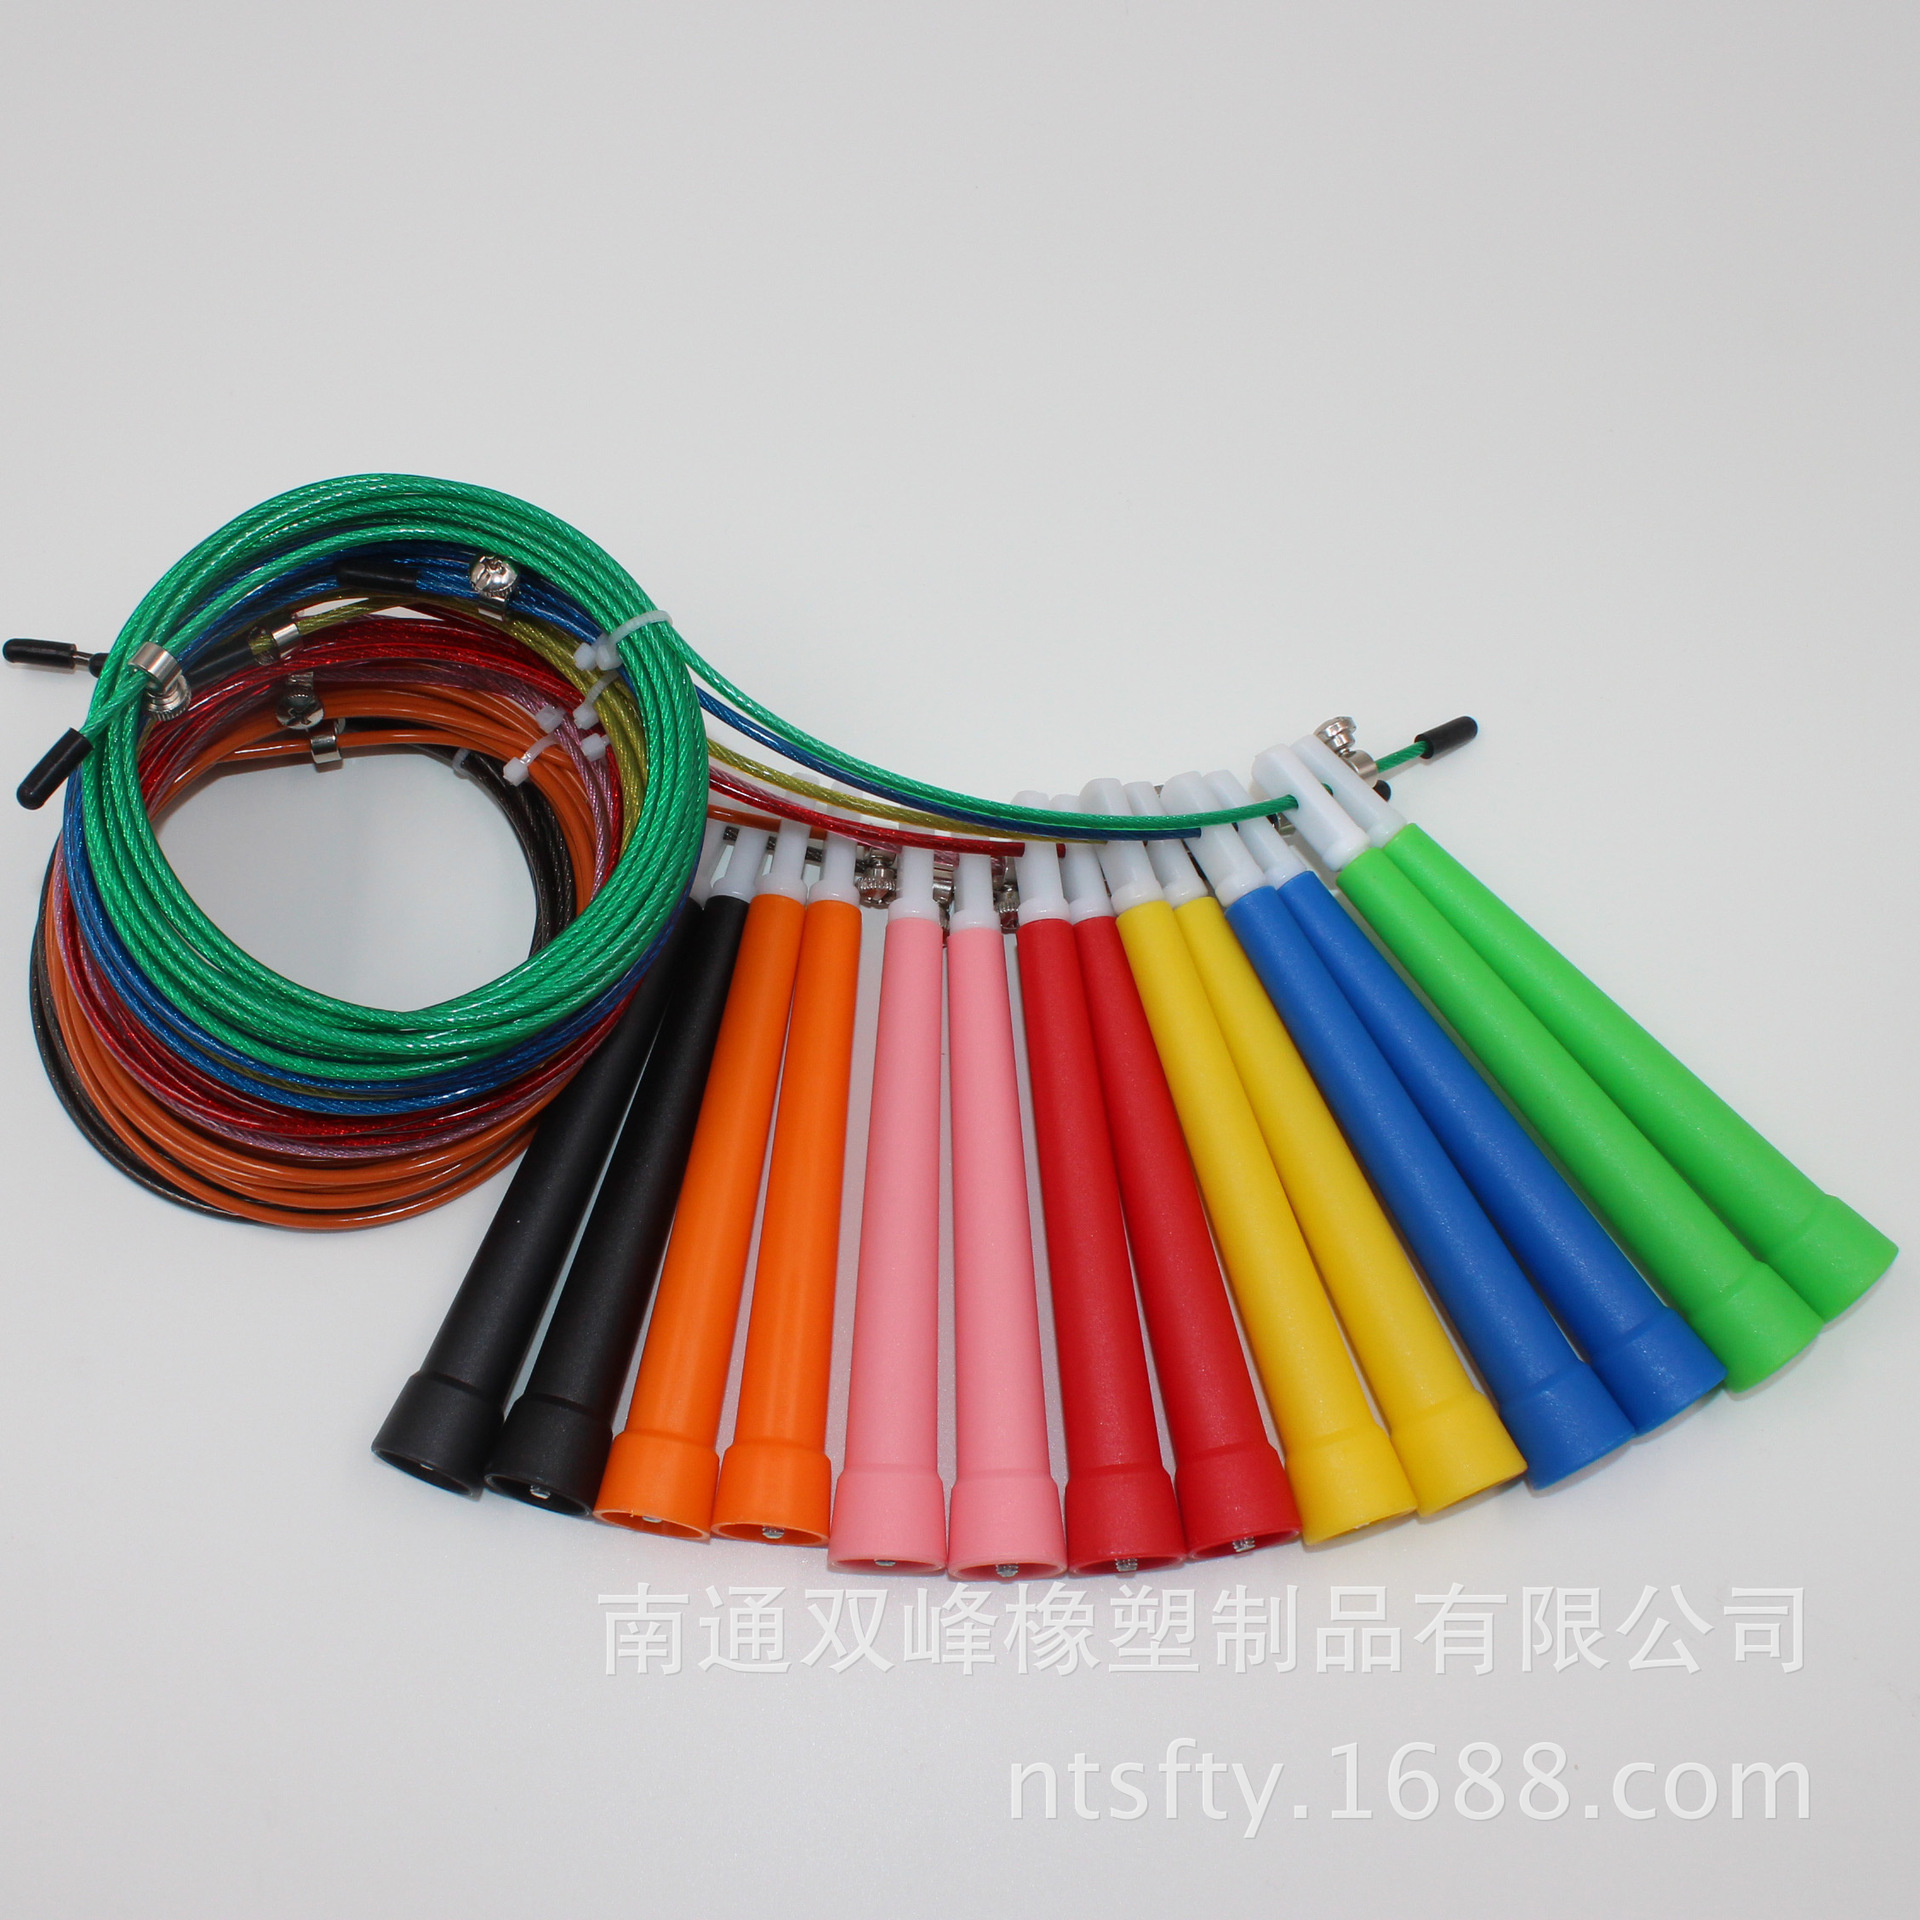 Factory Wholesale Sports Supplies The Academic Test For The Junior High School Students Only Jump Rope Low Price Promotion Steel